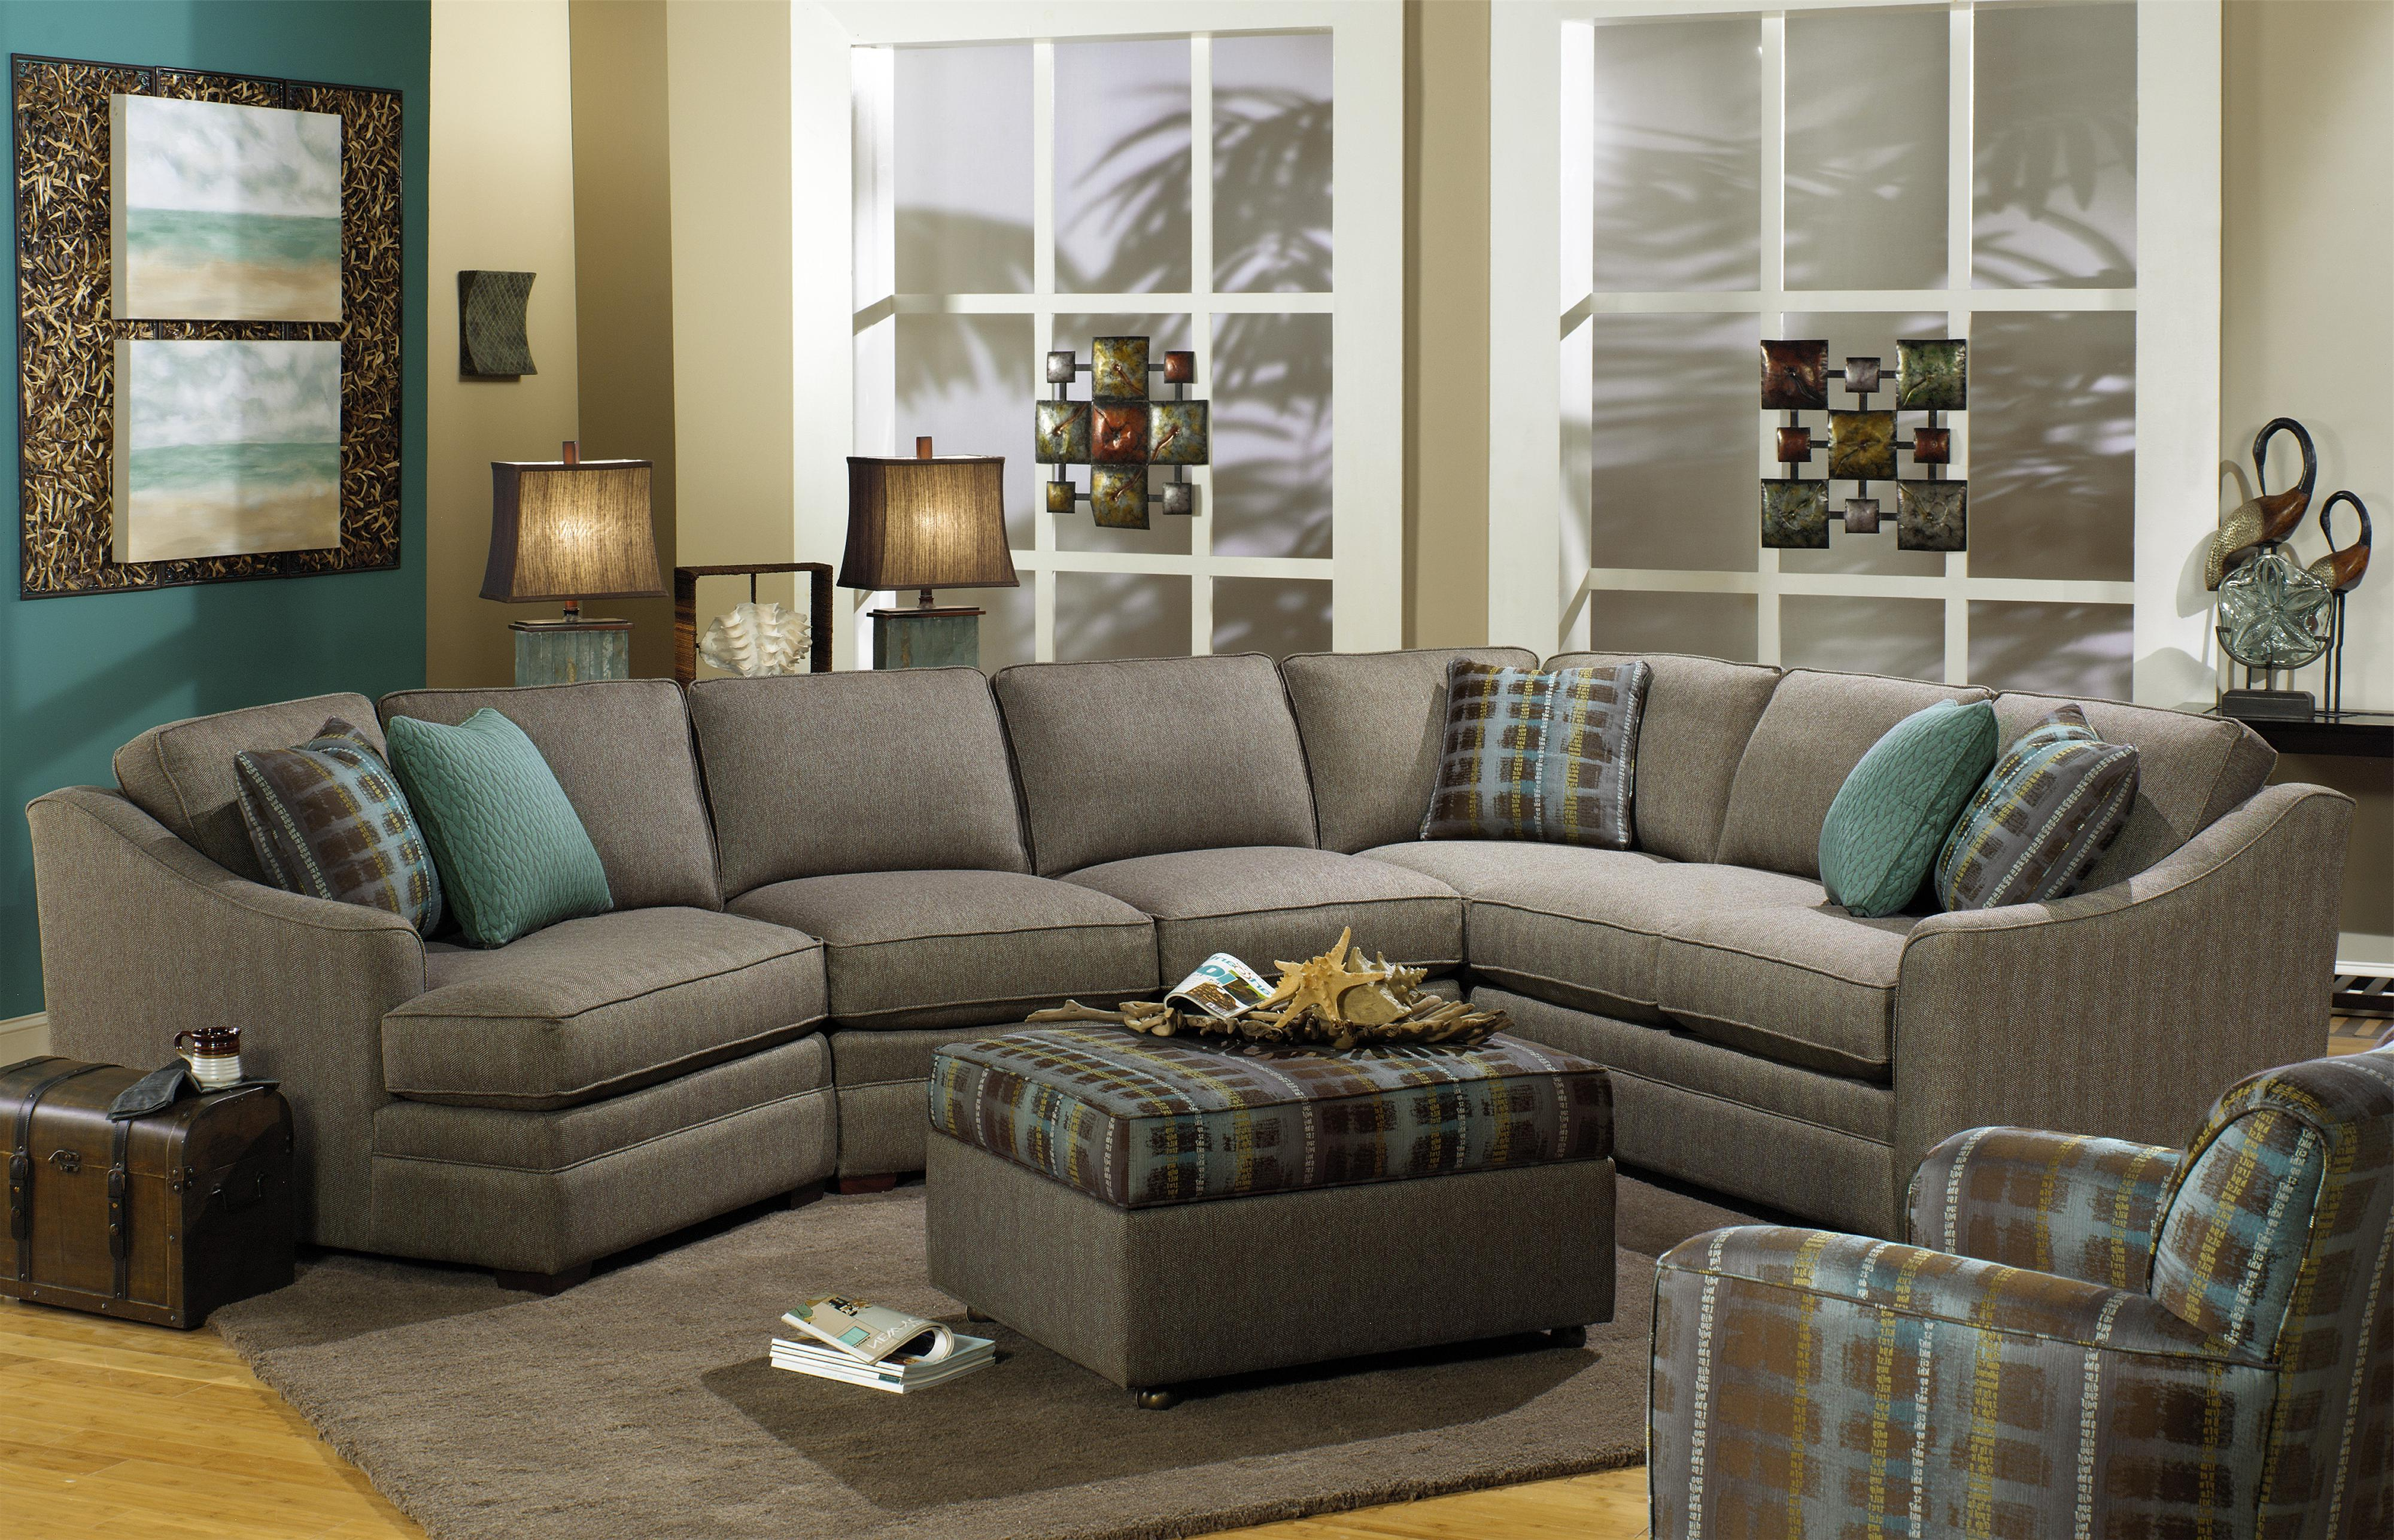 B>Customizable</b> 3 Piece Sectional With Raf Cuddlercraftmaster Regarding Popular Meyer 3 Piece Sectionals With Raf Chaise (View 12 of 20)